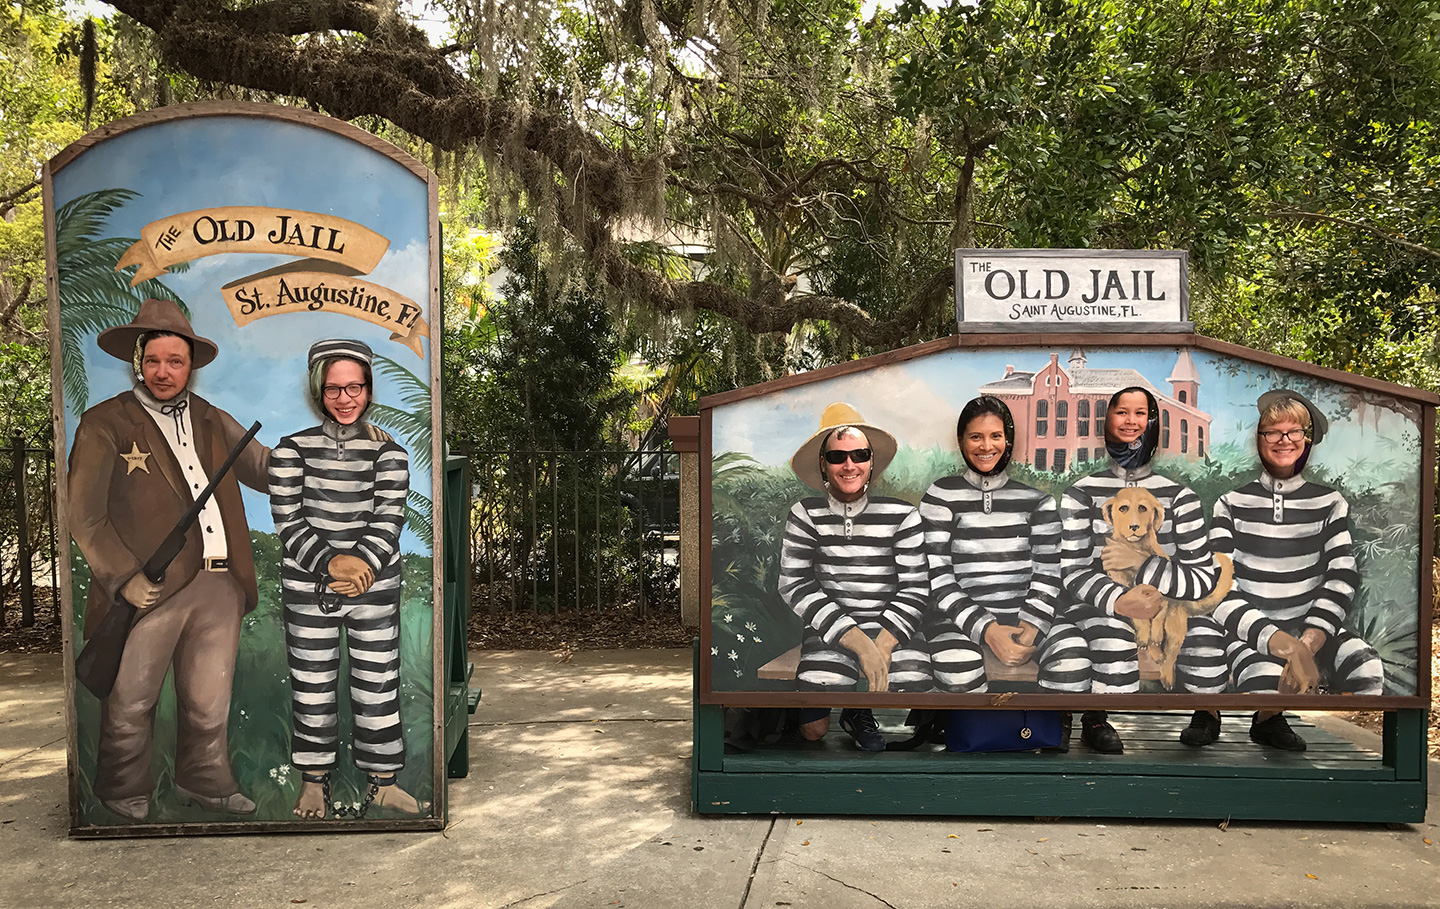 List of Fun Things To Do In St. Augustine, Florida - Old Jail